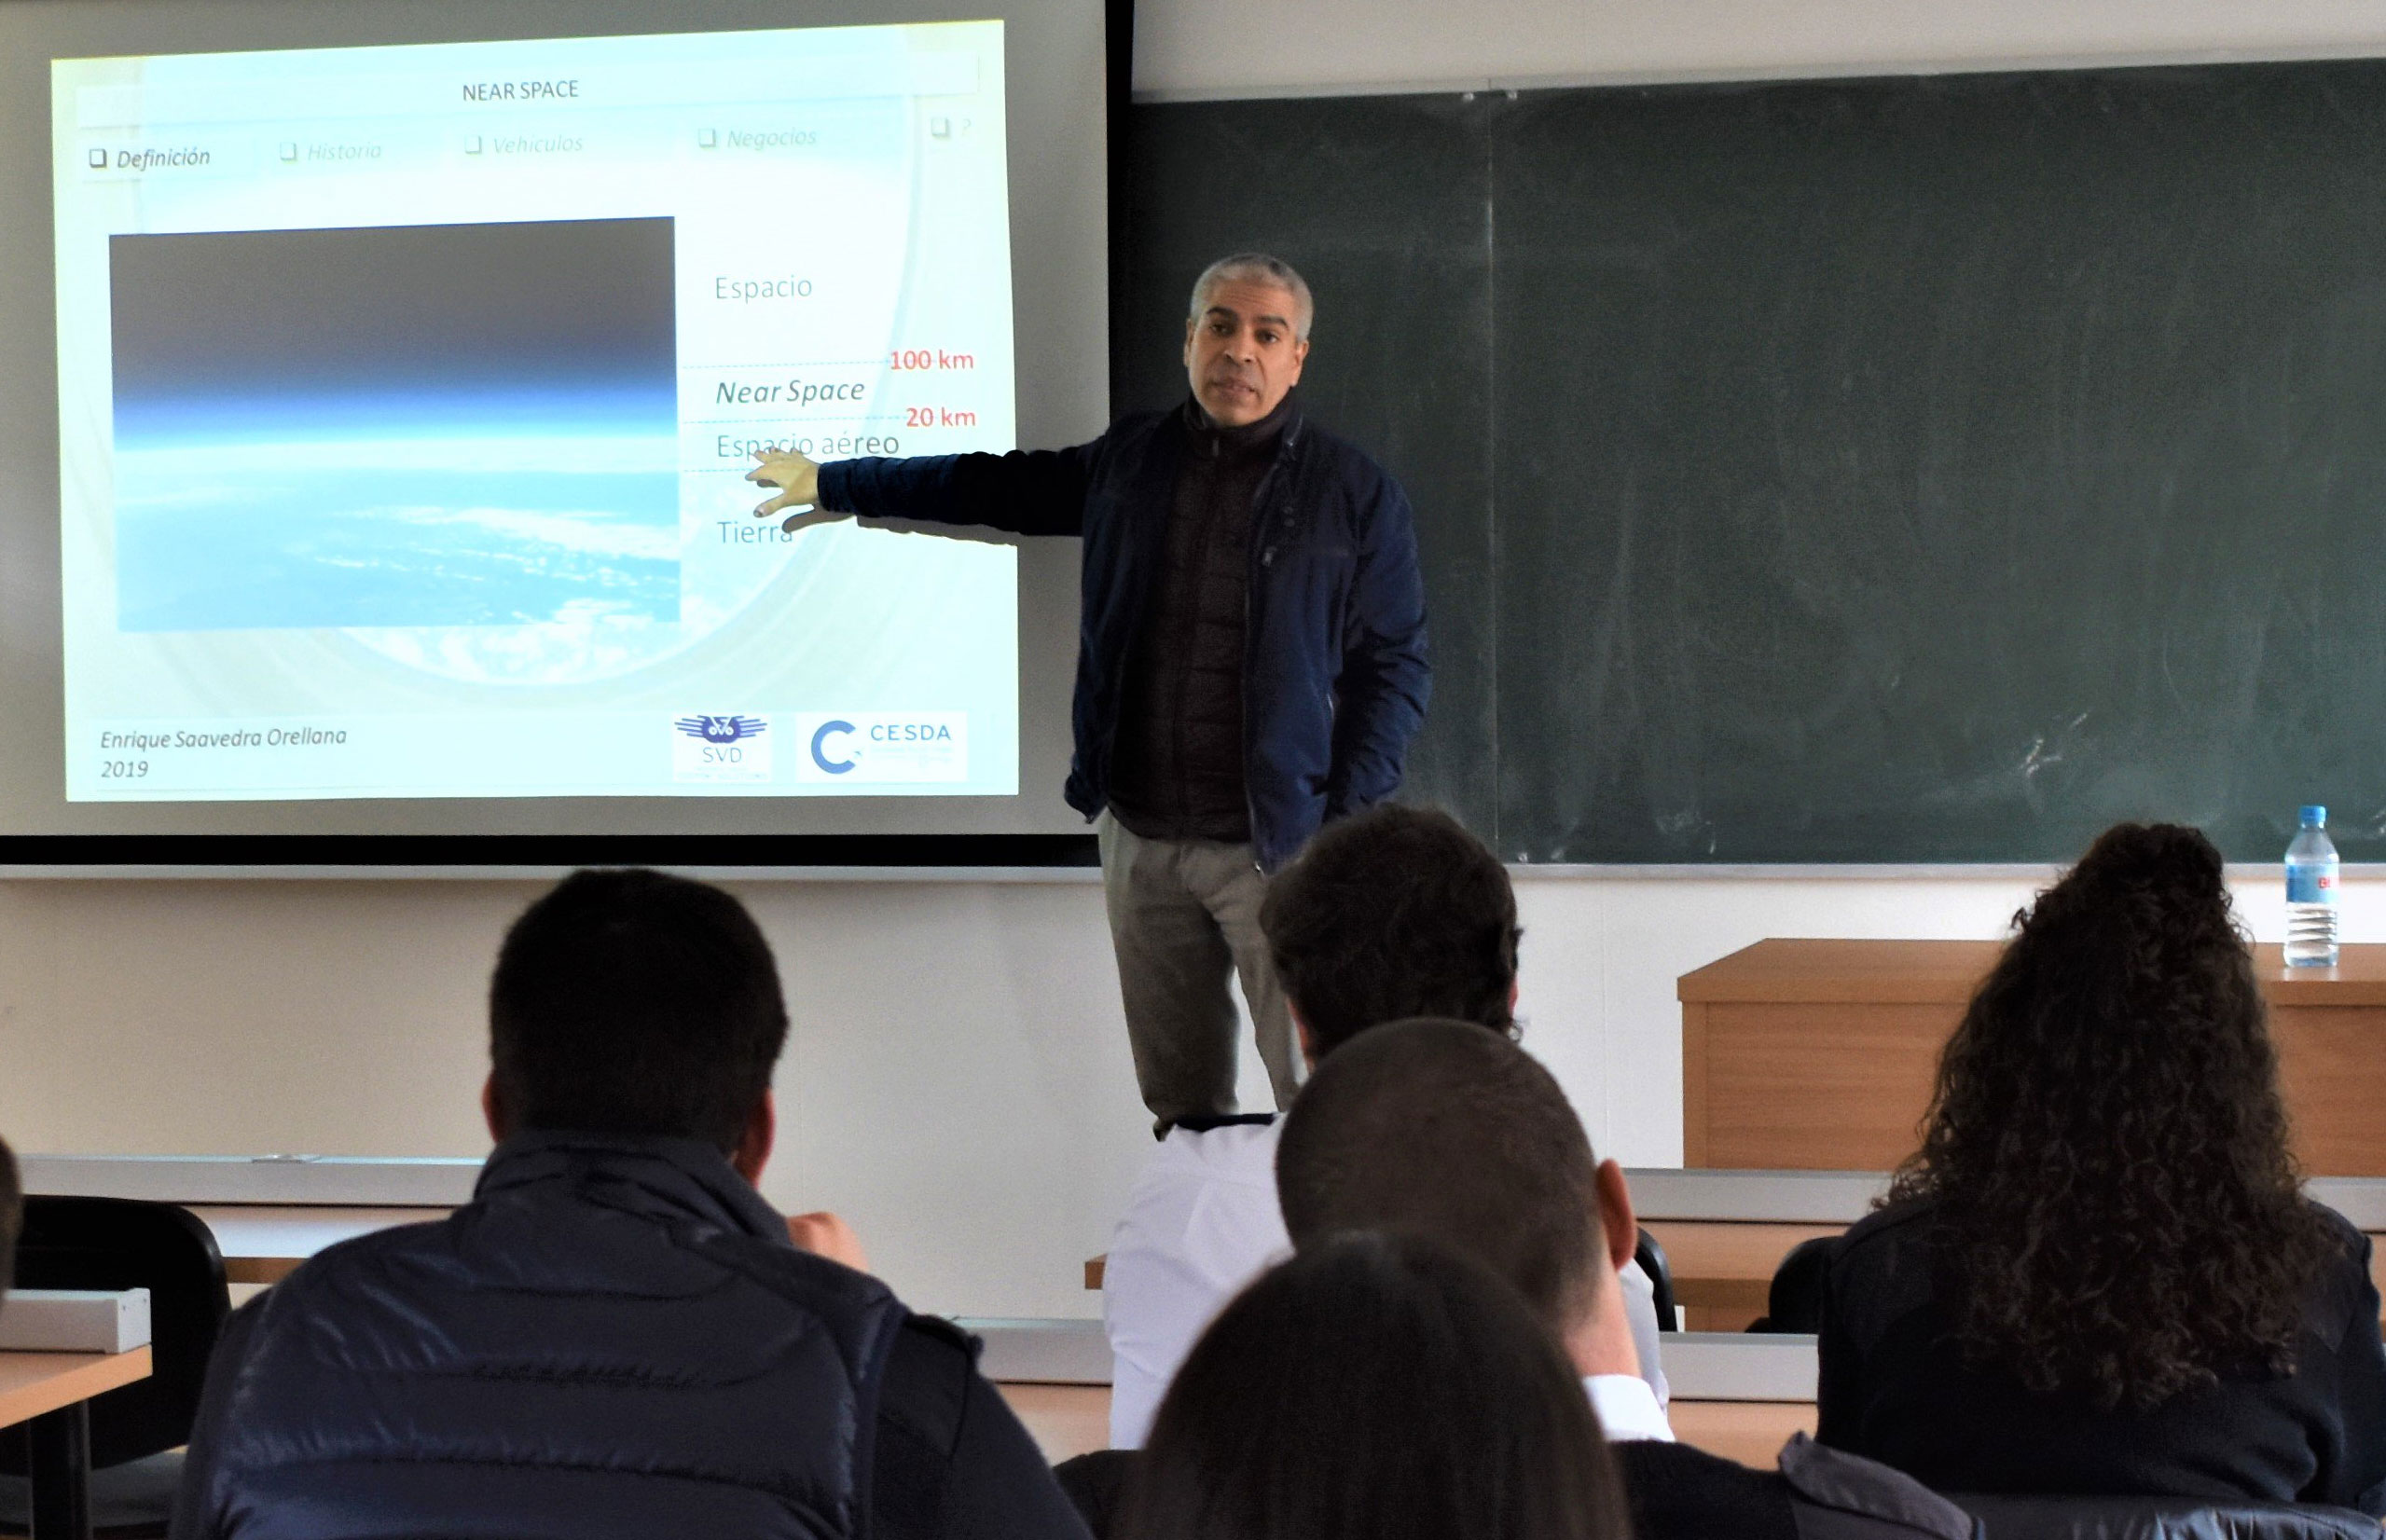 Conferencia Near Space en el día CESDA 2019